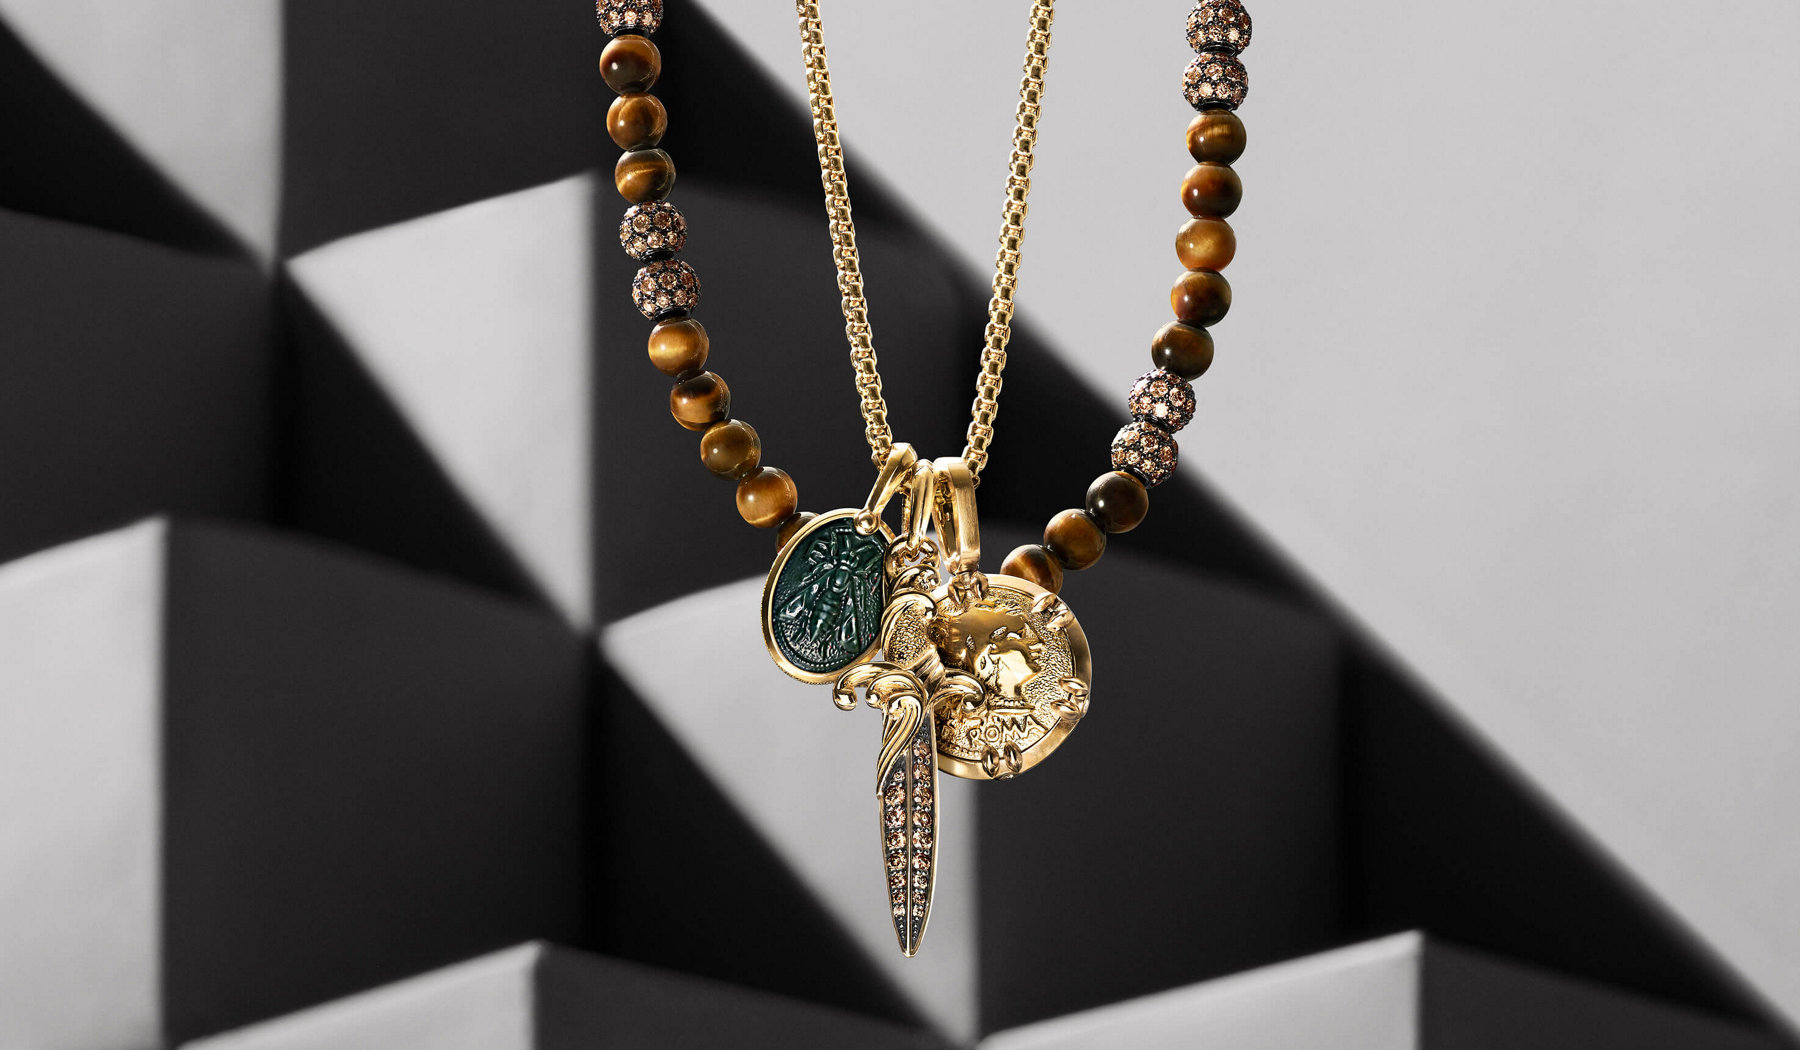 A color photograph shows a David Yurman men's Chain necklace strung with three amulets hanging in front of a Spiritual Beads necklace, with both of the necklaces hanging in front of an out-of-focus tower of cube-shaped beige stone blocks covered in diagonal shadows and rays of light. The chain necklace is crafted from 18K yellow gold, and the three amulets, from left, include a Petrvs bee amulet in 18K yellow gold with bloodstone, a Waves dagger amulet in 18K yellow gold with pavé cognac diamonds and a Roman coin amulet in 18K yellow gold. The bead necklace is crafted from tiger's eye with sterling silver and pavé cognac diamonds.